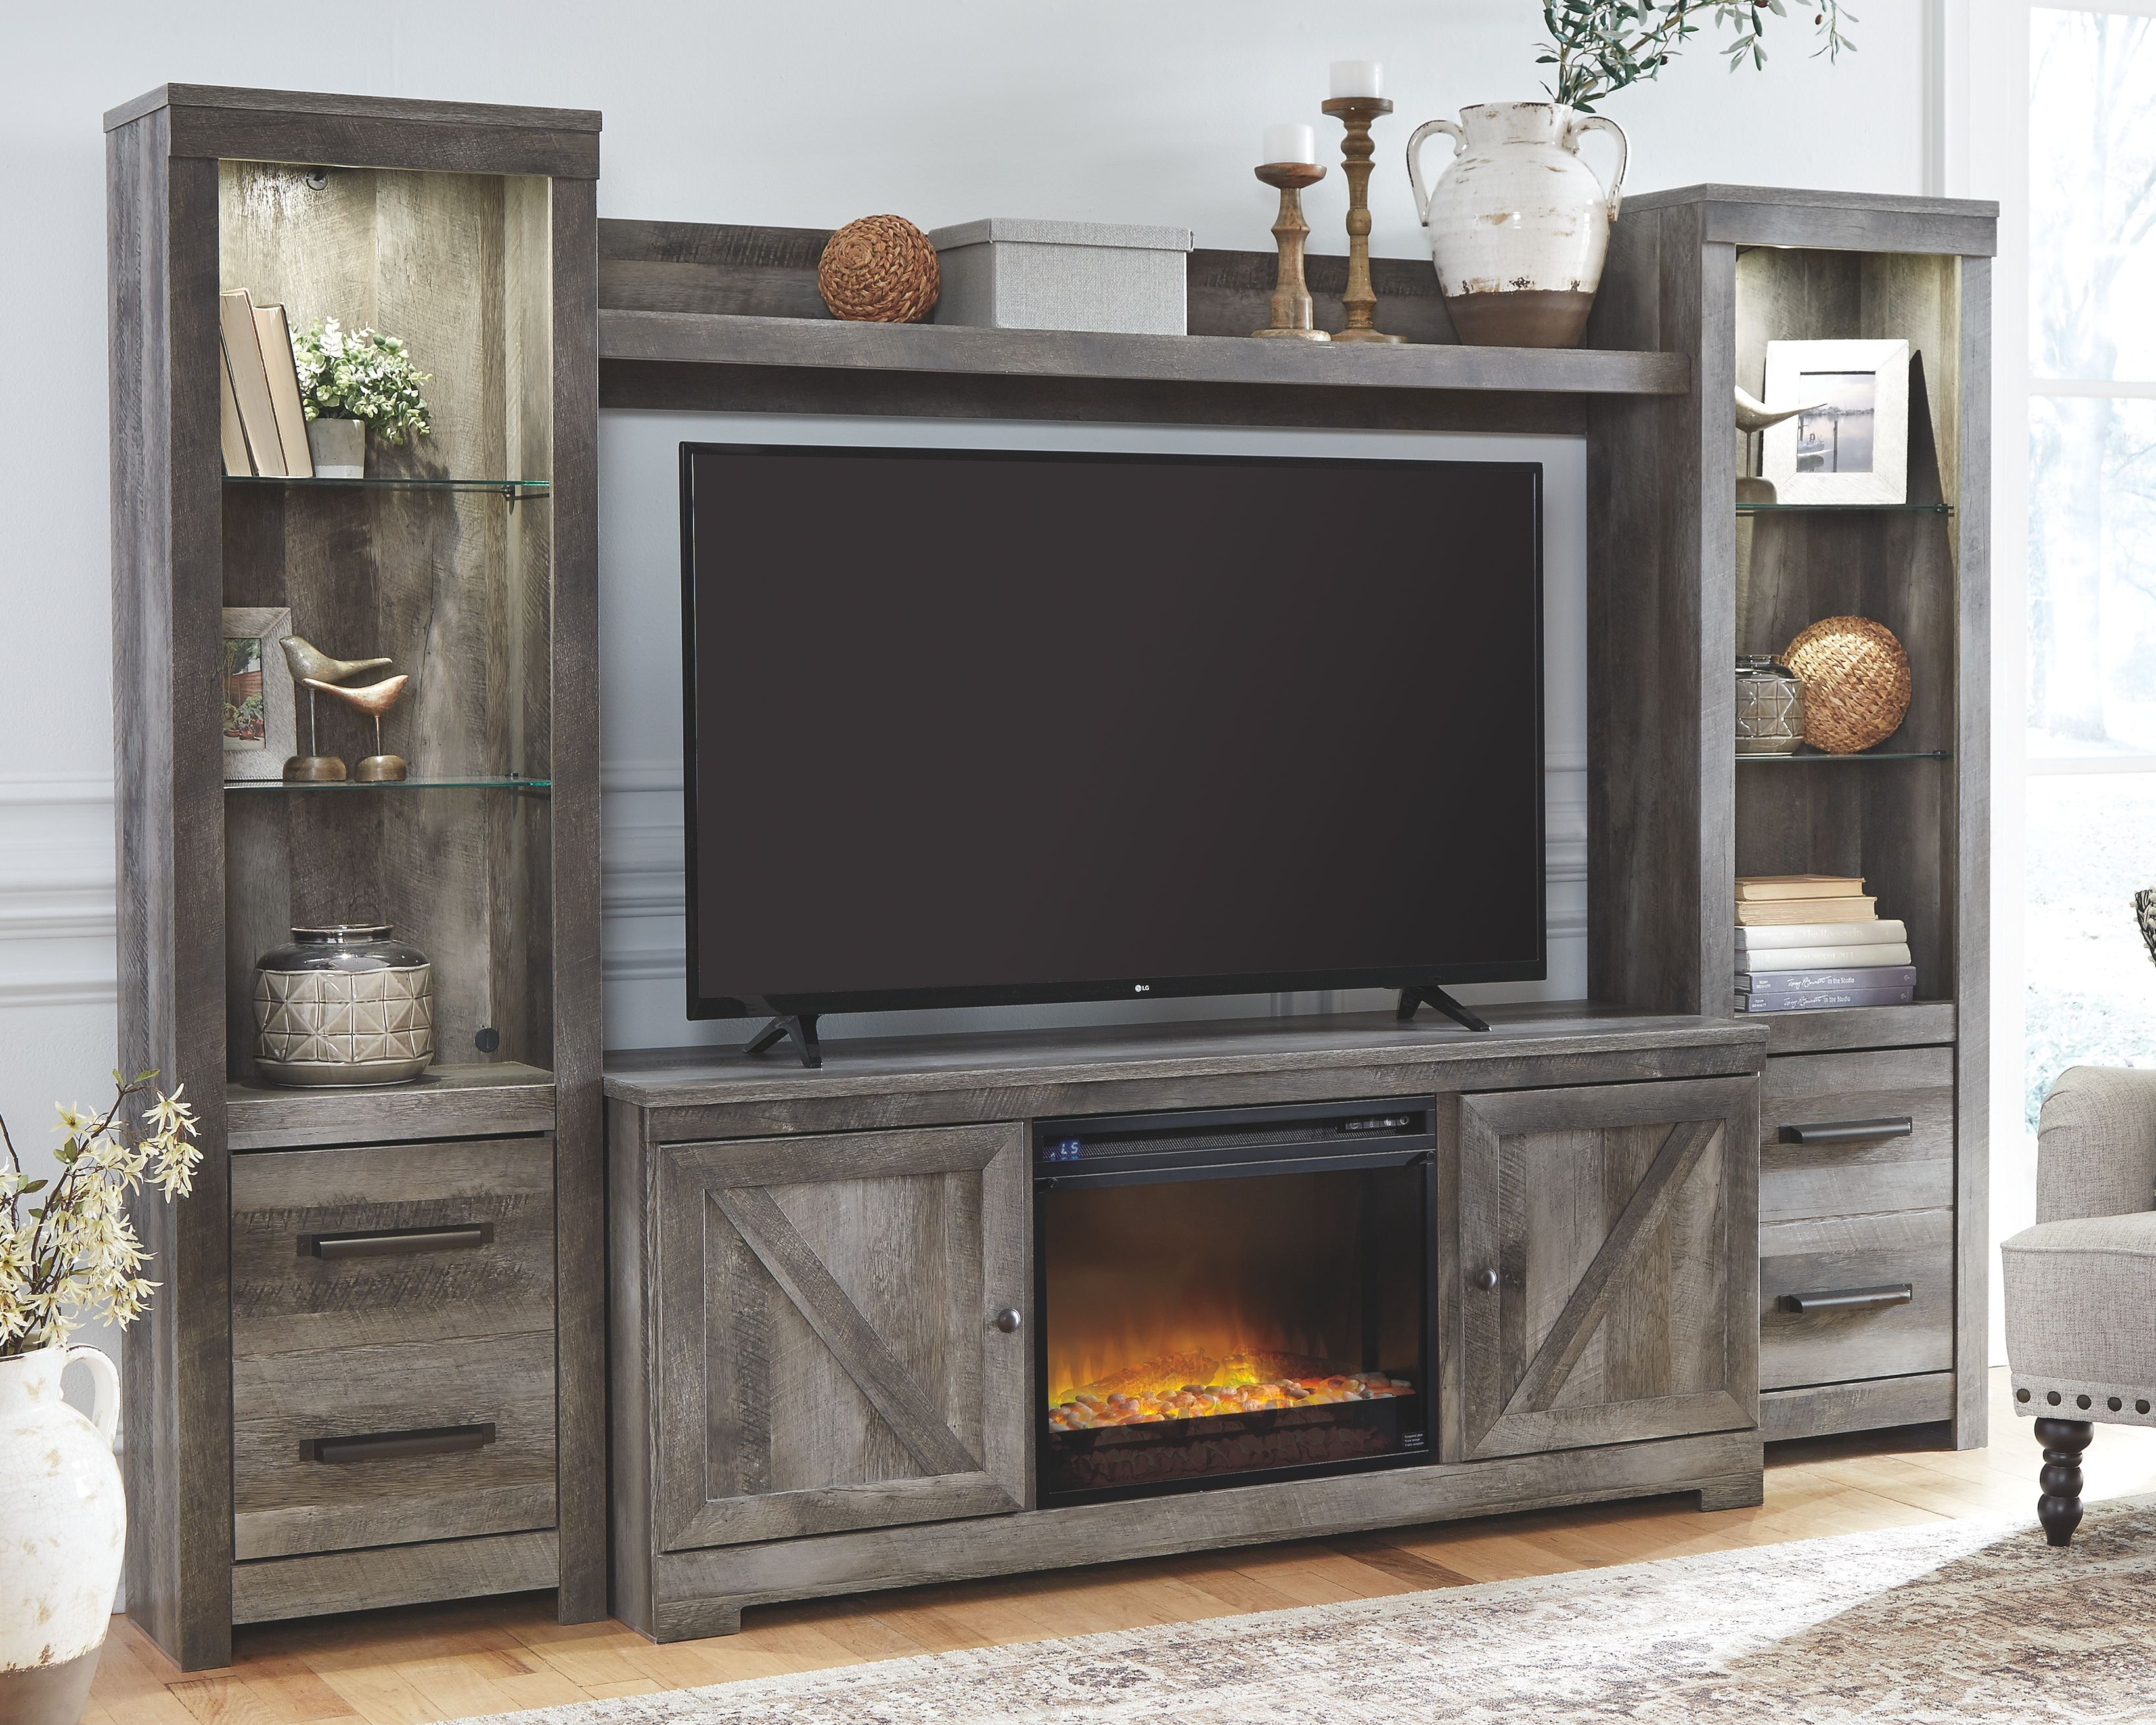 Wynnlow 4 Piece Entertainment Center With Fireplace Gray In 2020